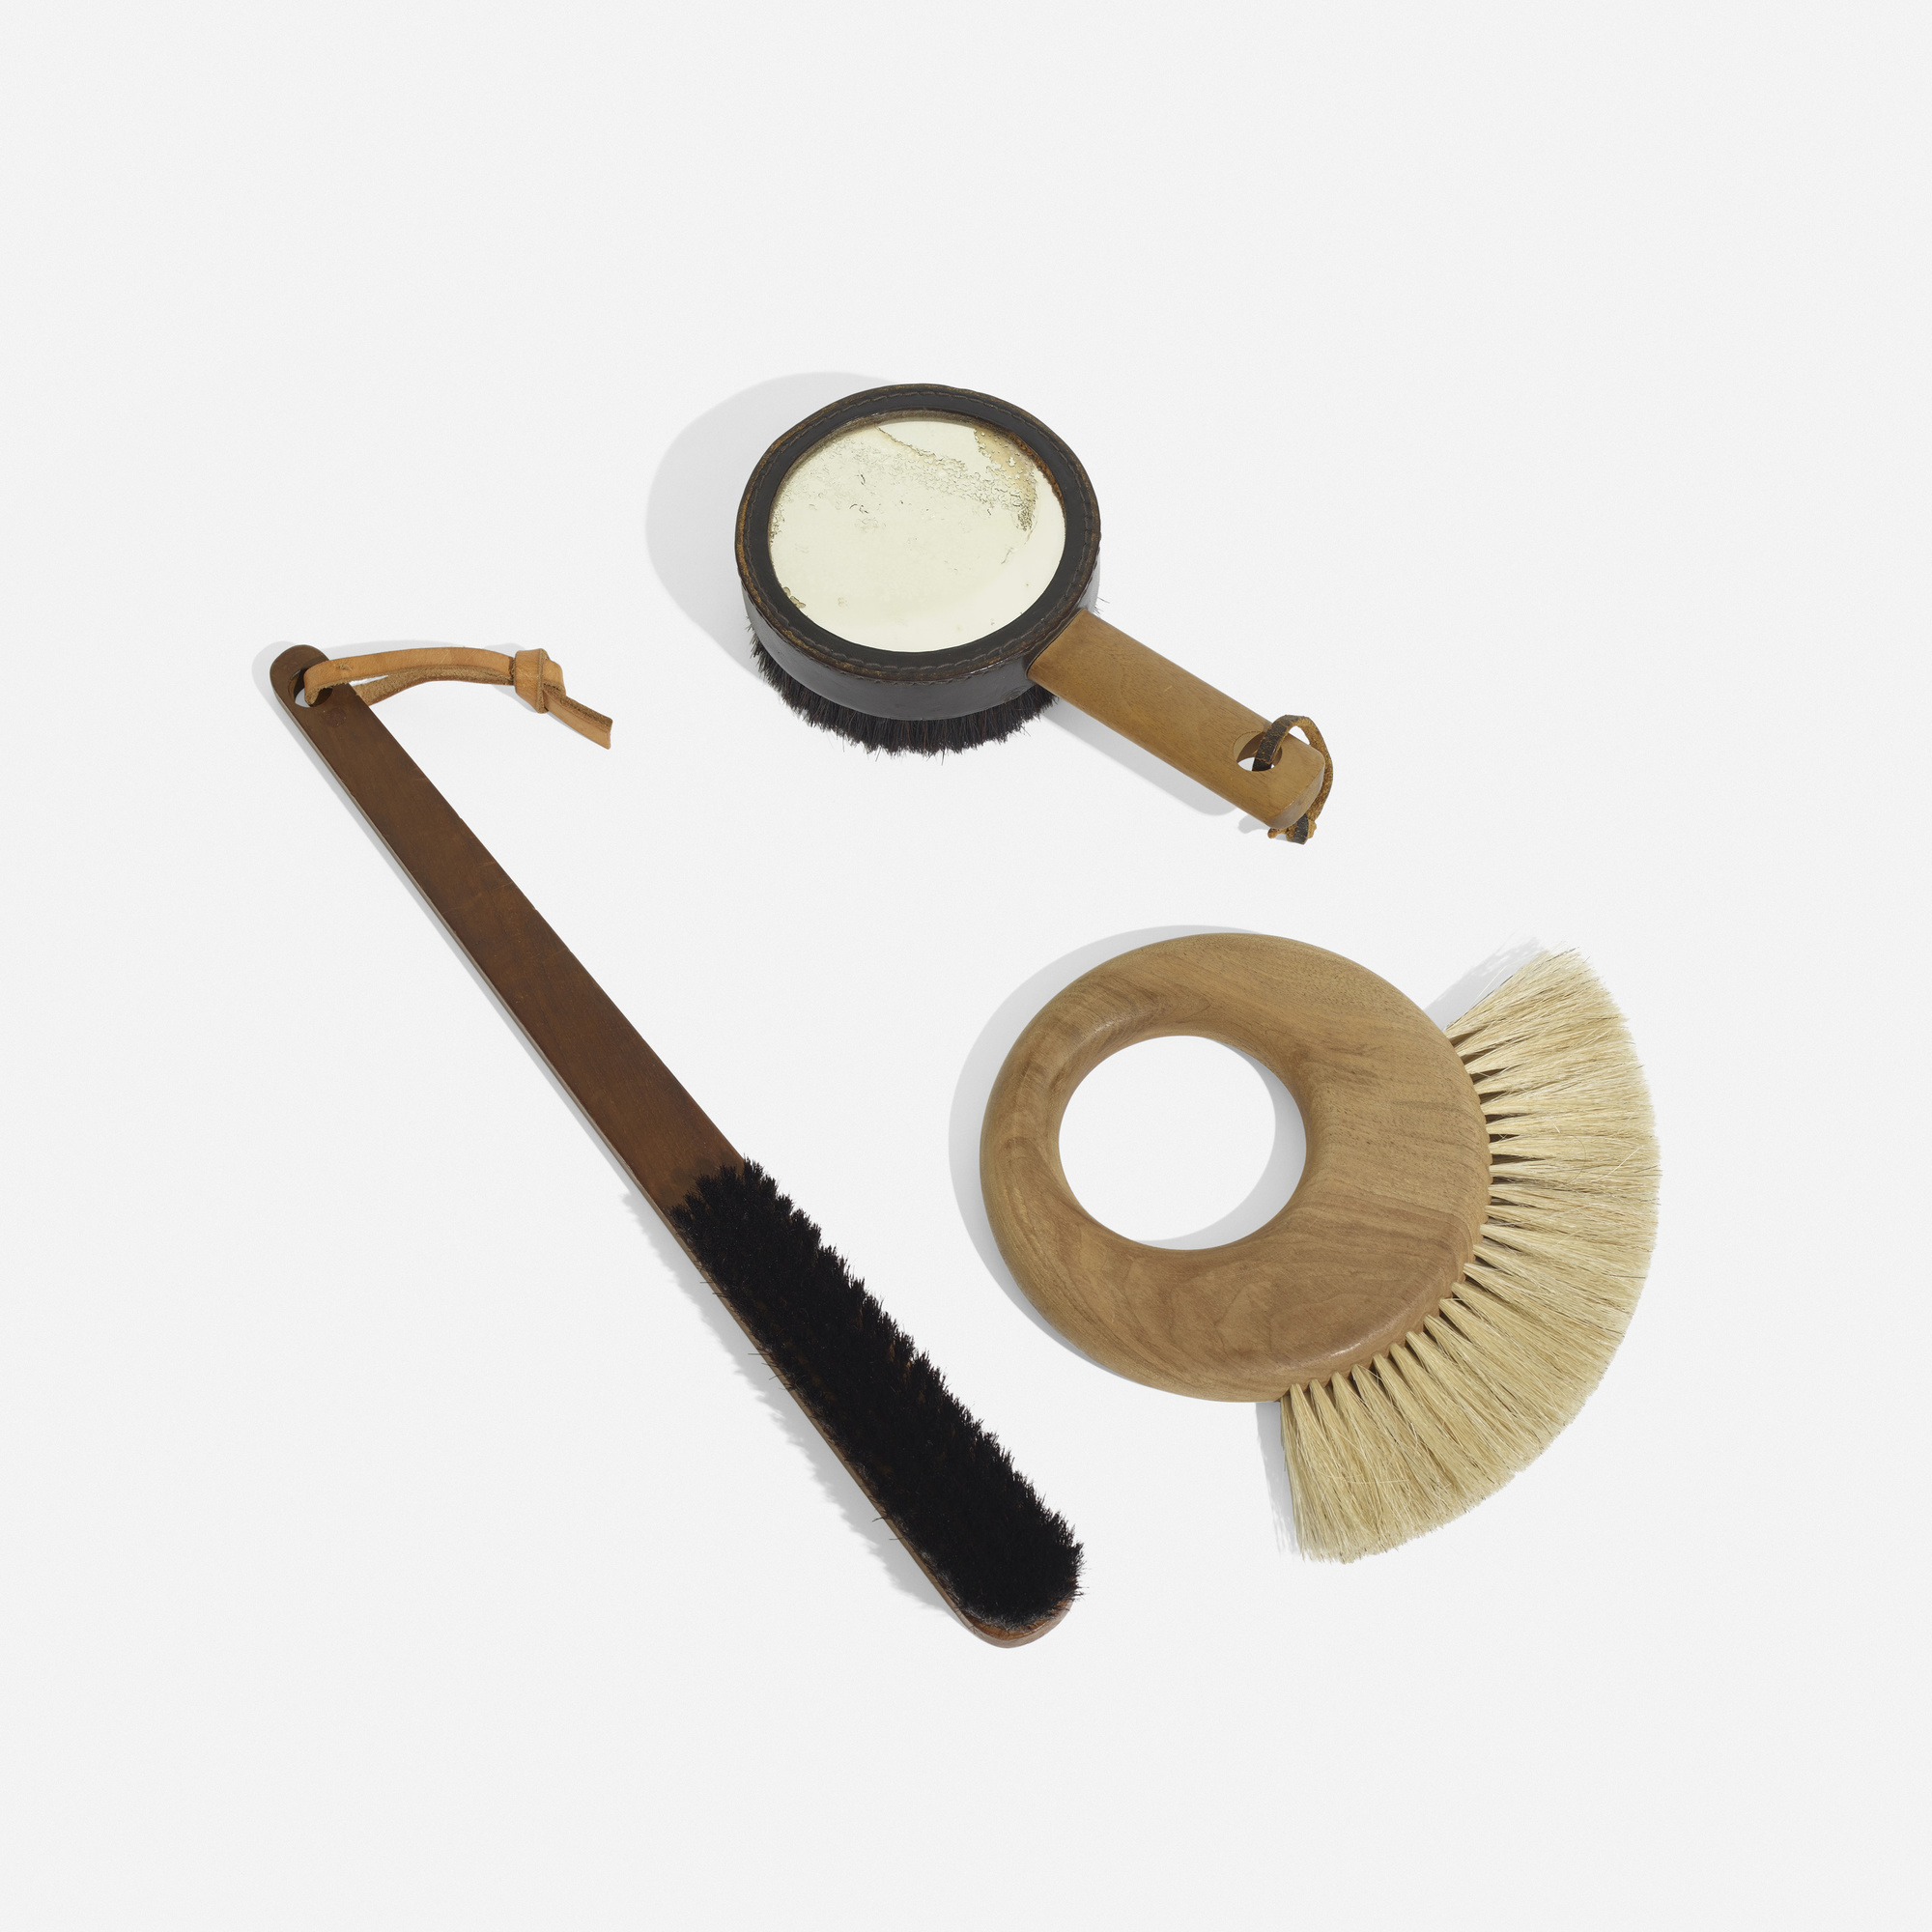 102: Carl Auböck II and Carl Auböck III / collection of three clothes brushes (2 of 2)